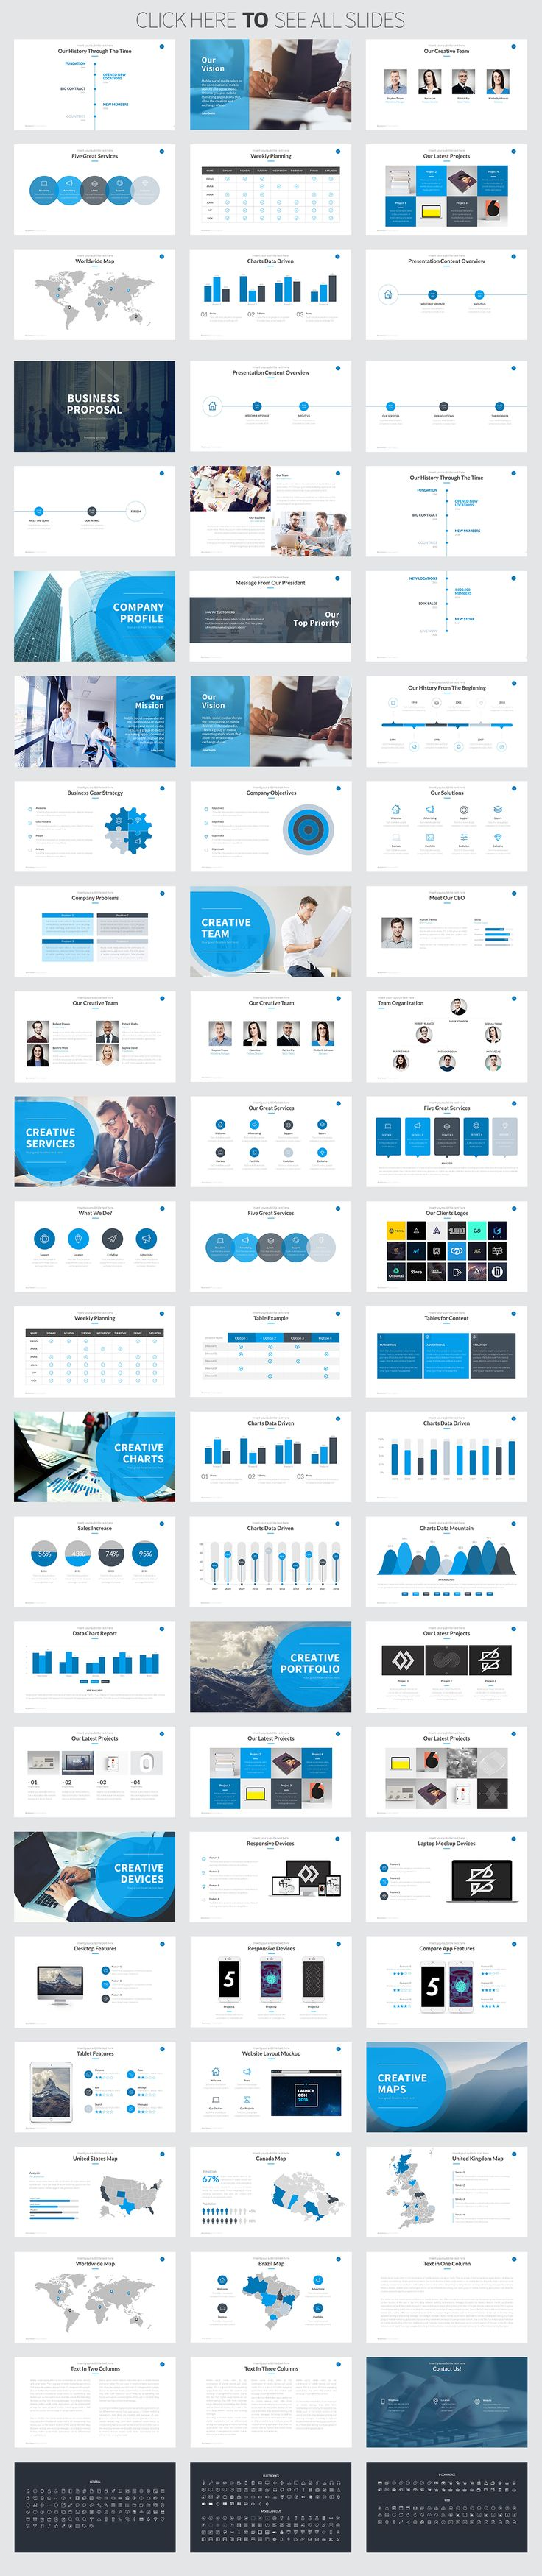 marketing powerpoint presentation